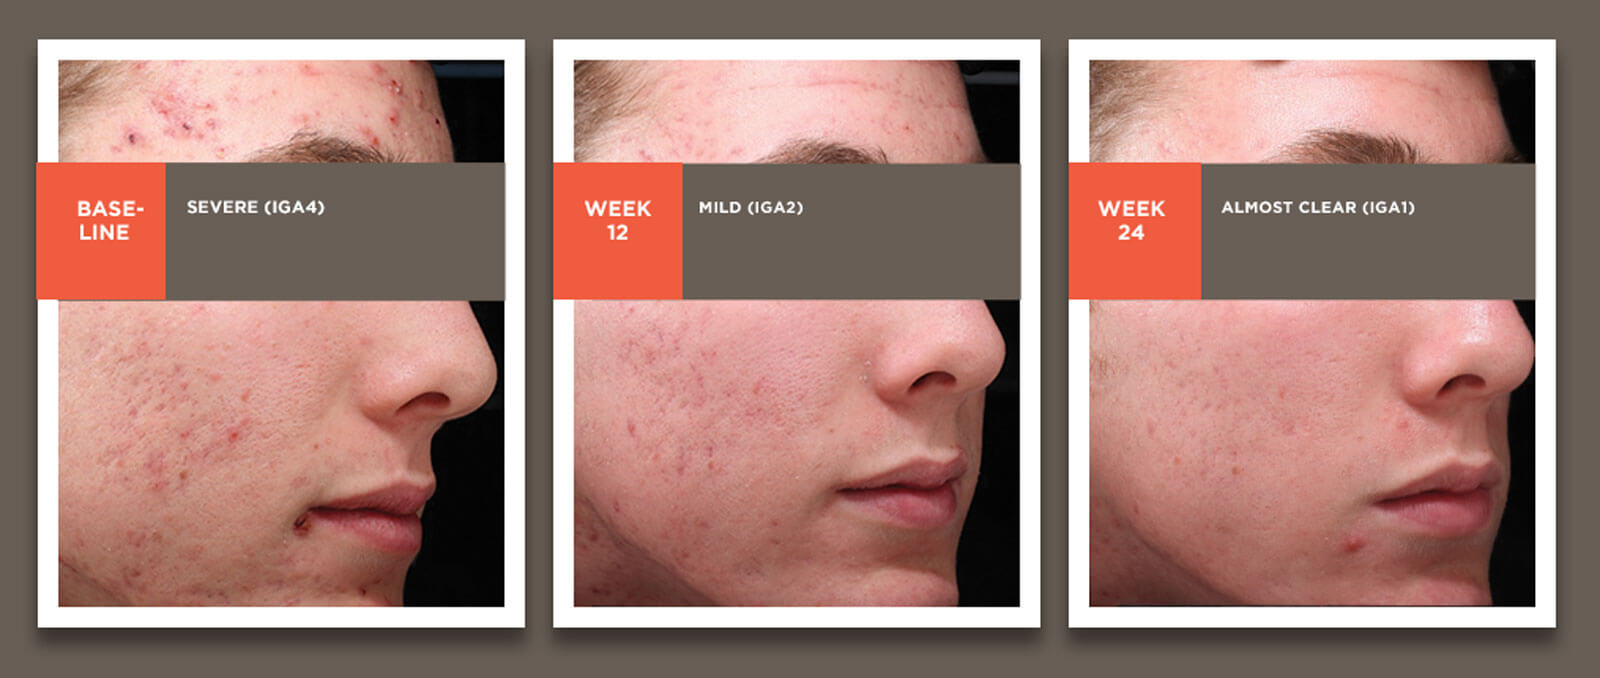 Images showing acne treatment results from baseline through 24 weeks in a 16-yo white male.